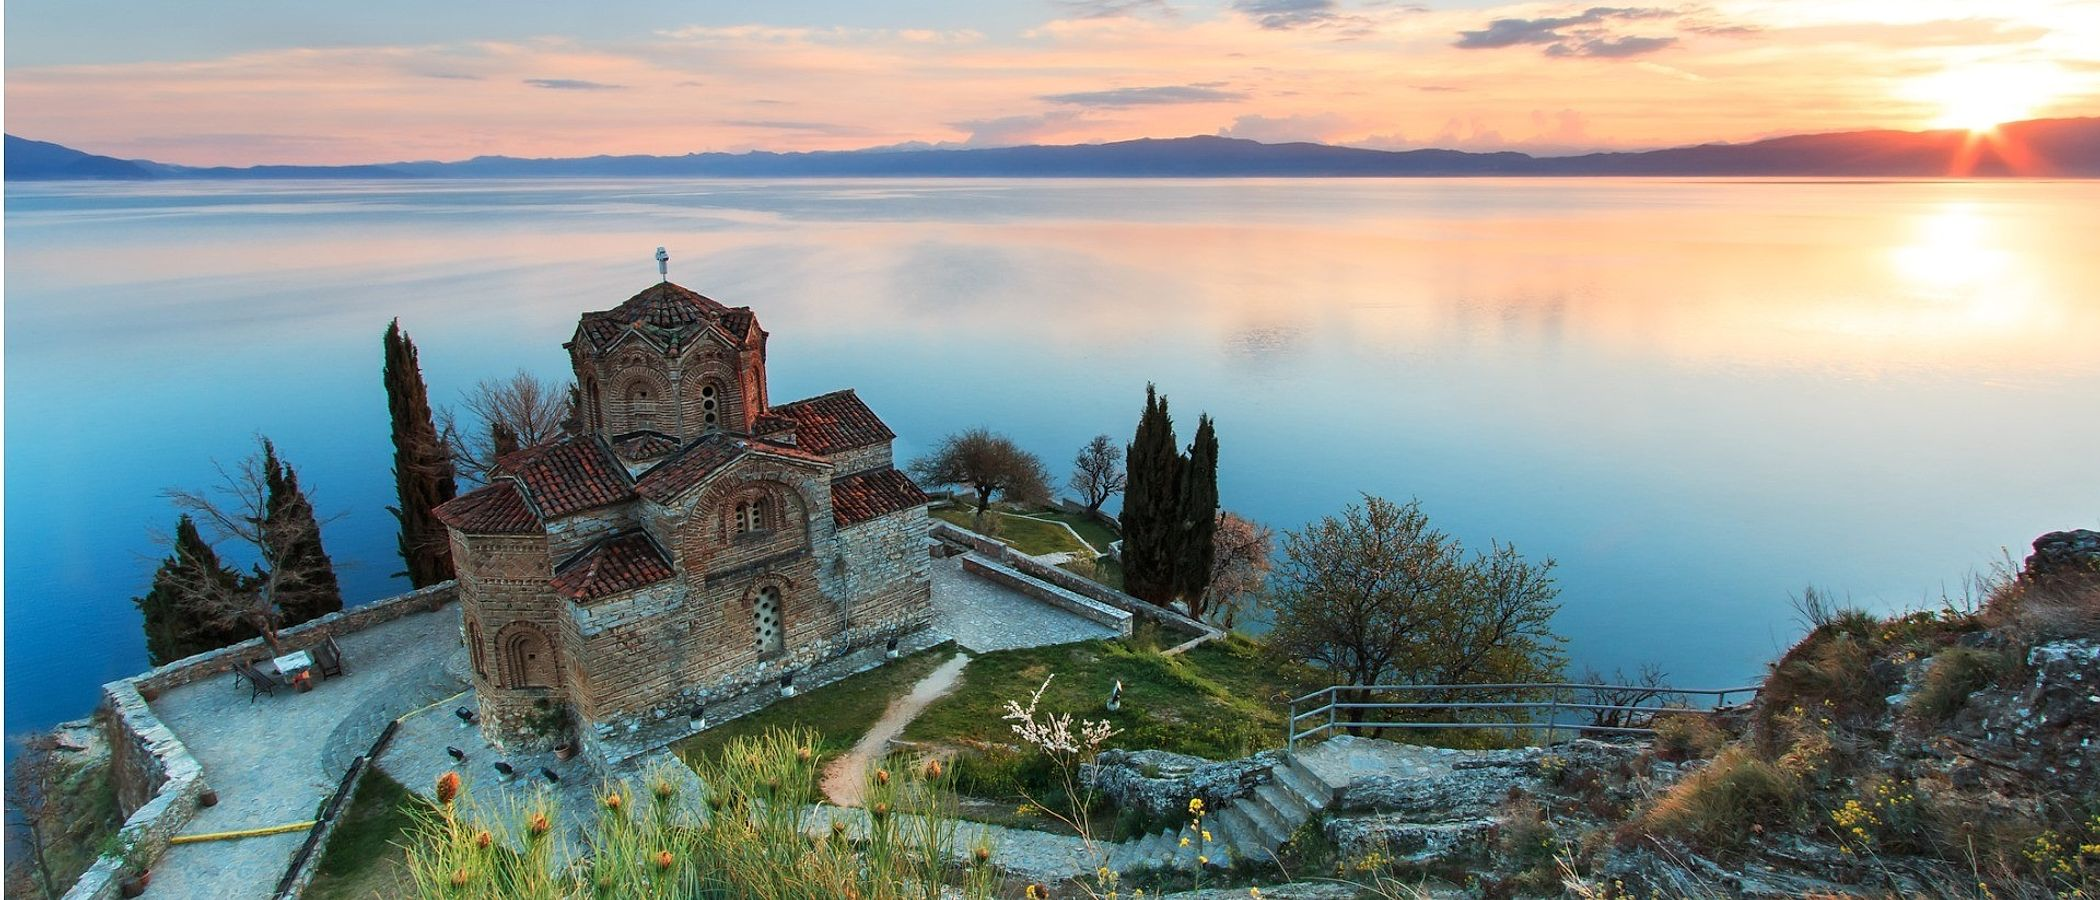 Ohrid Macedonia